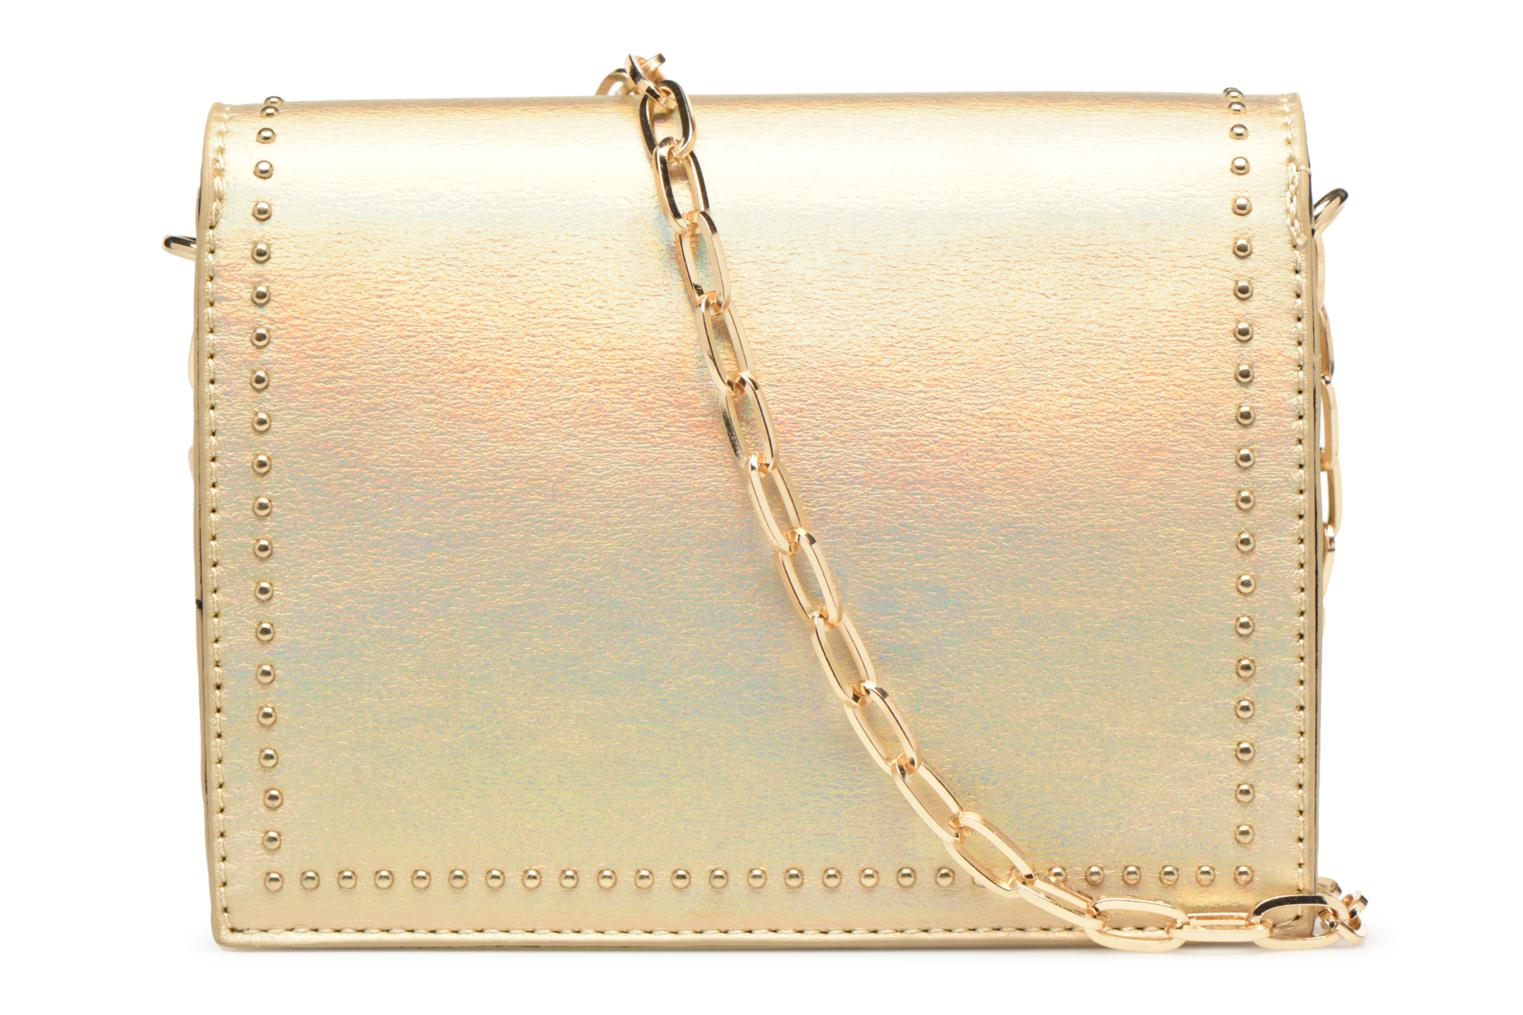 chainstrap crossbody Gold Mettalic Level Street E6awnx8ATq